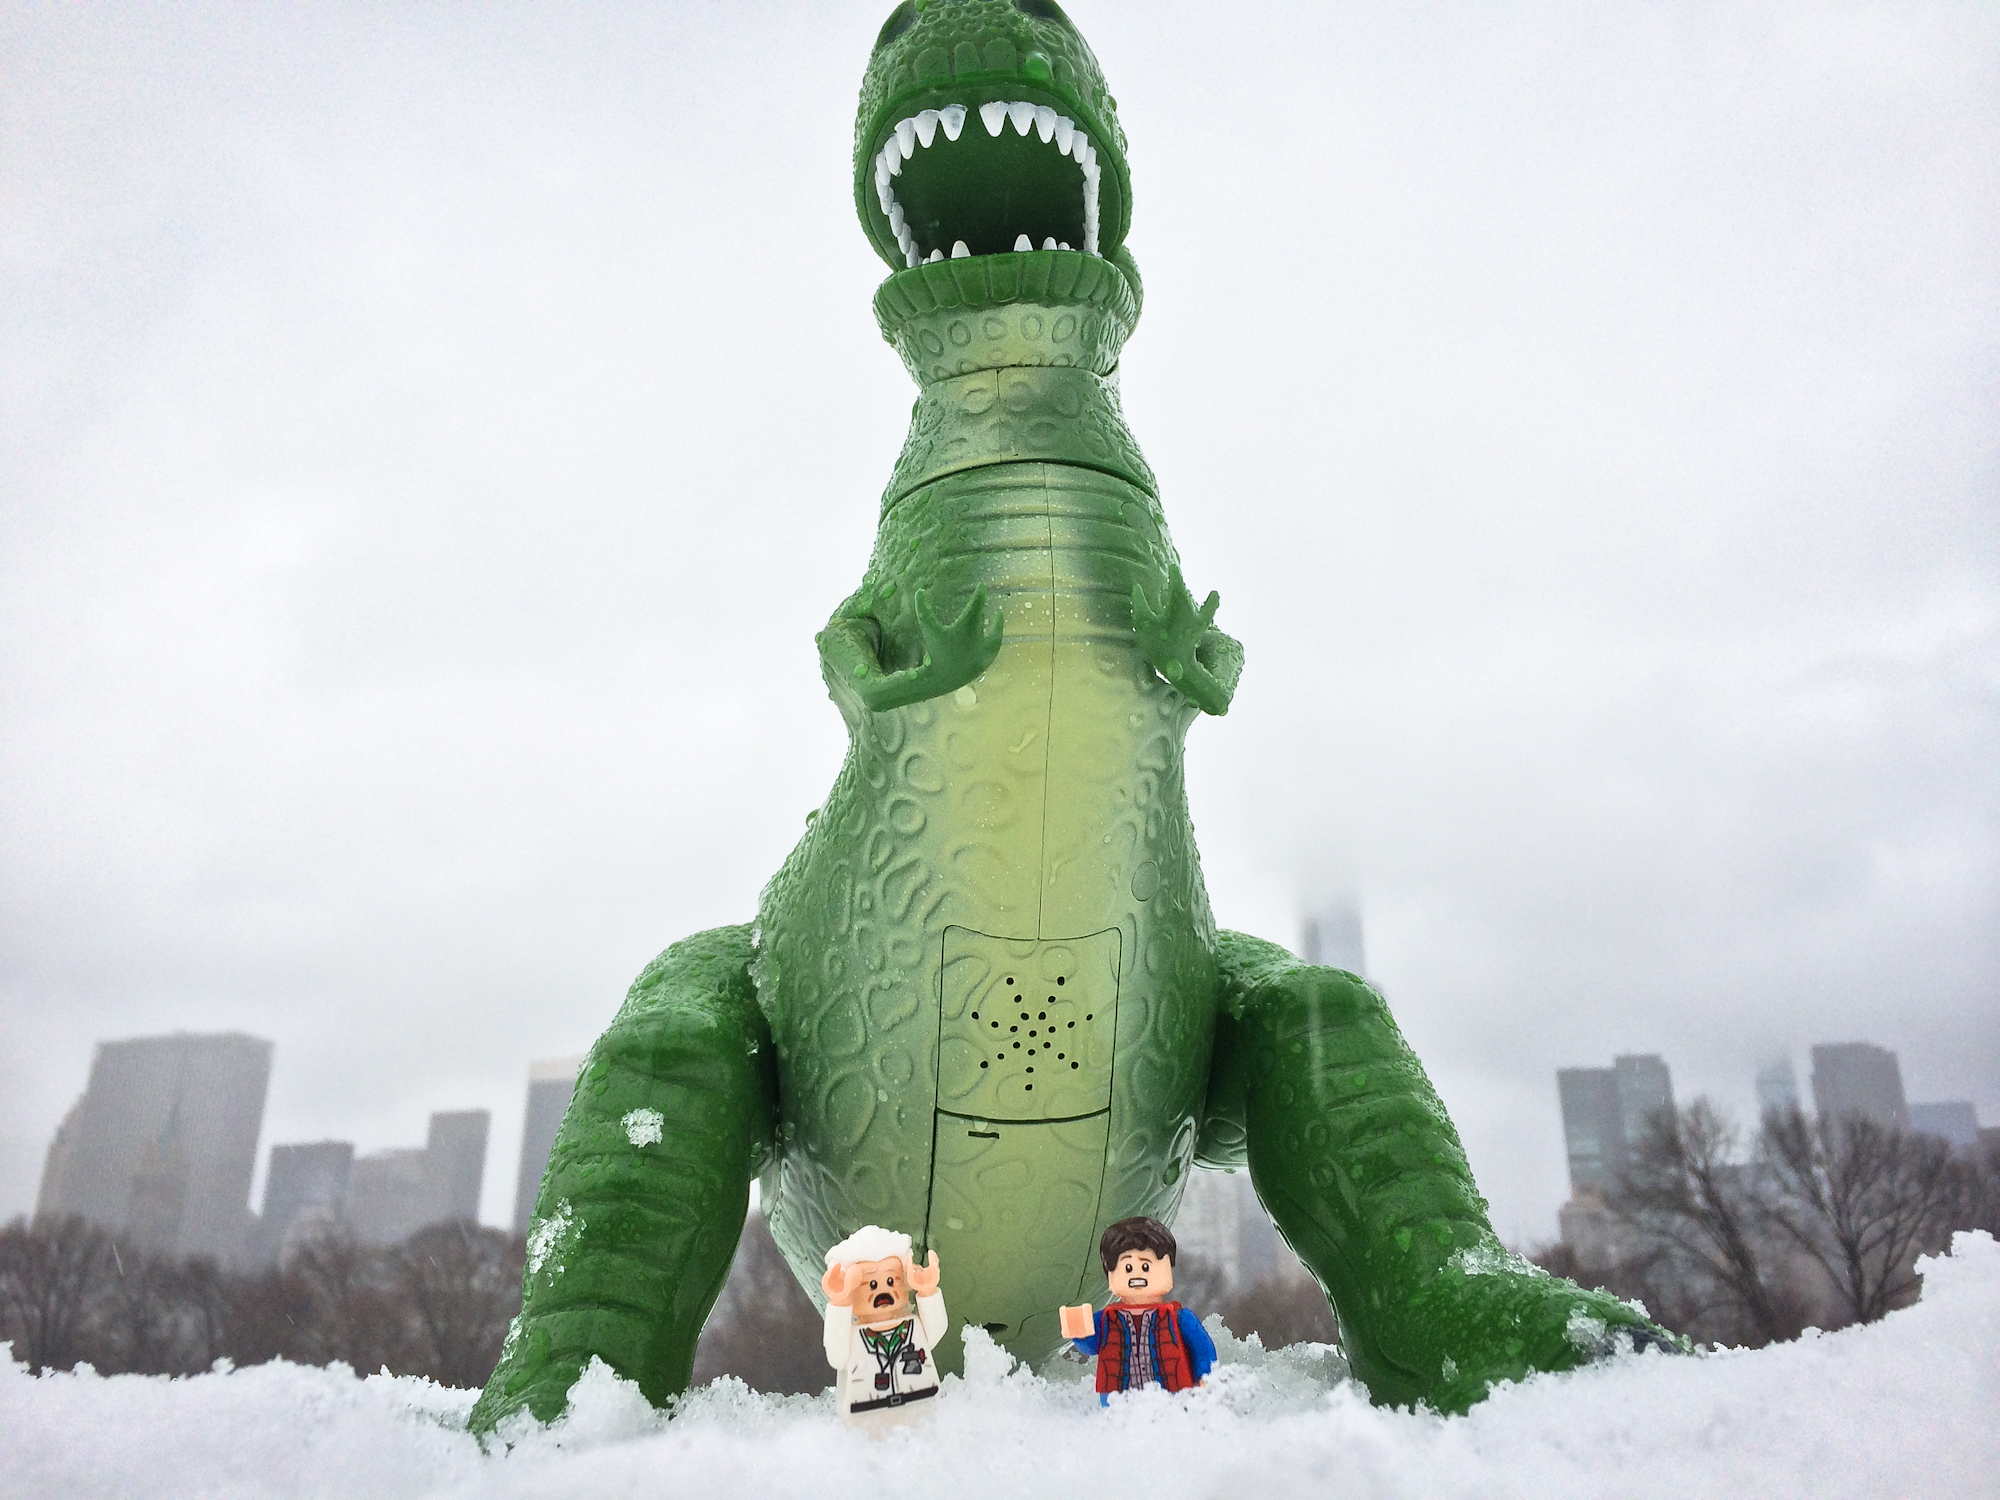 Back to the Future lego Marty McFly and Dr. Emmett Brown with Toy Story Rex in New York City snow.